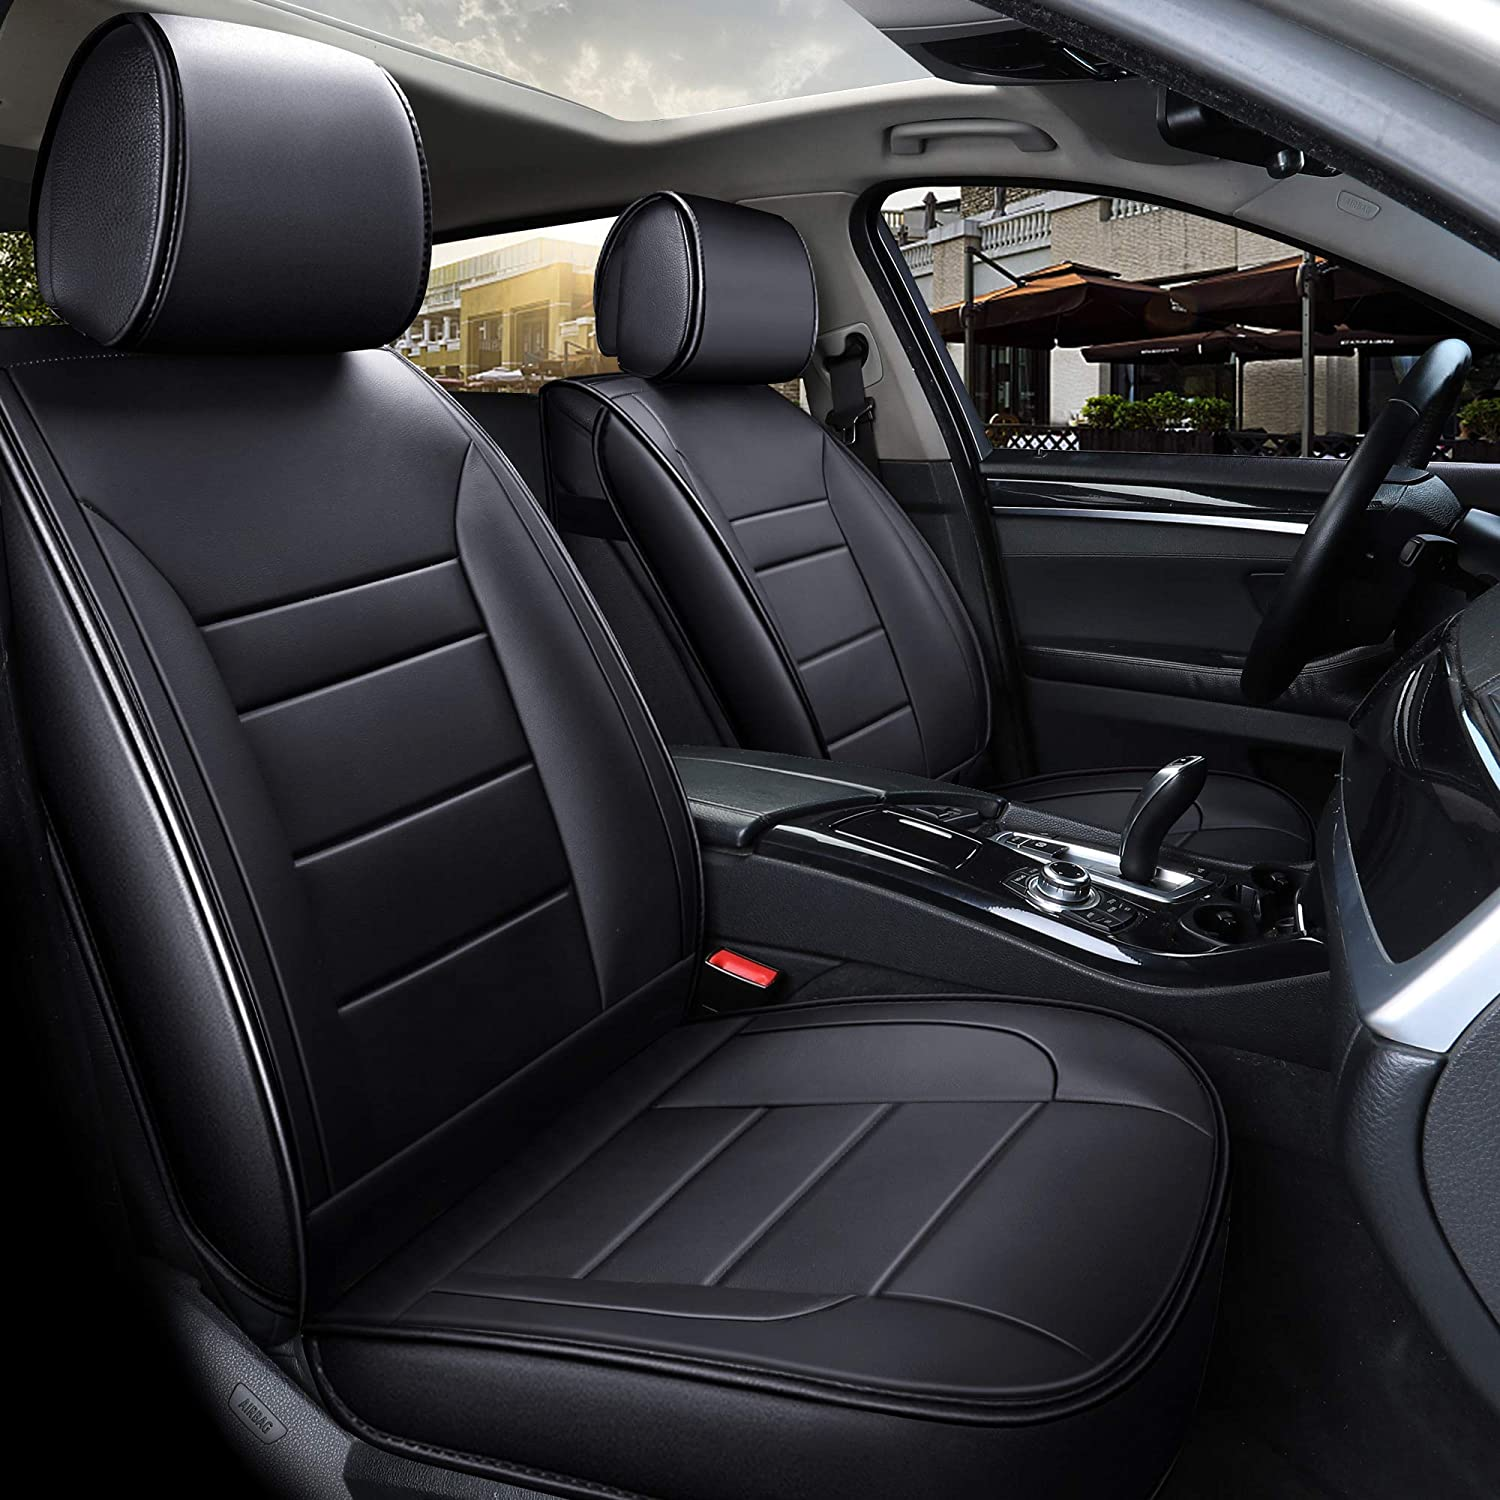 MITSUBISHI OUTLANDER 2 x Fronts Heavy Duty Black Waterproof Car Seat Covers